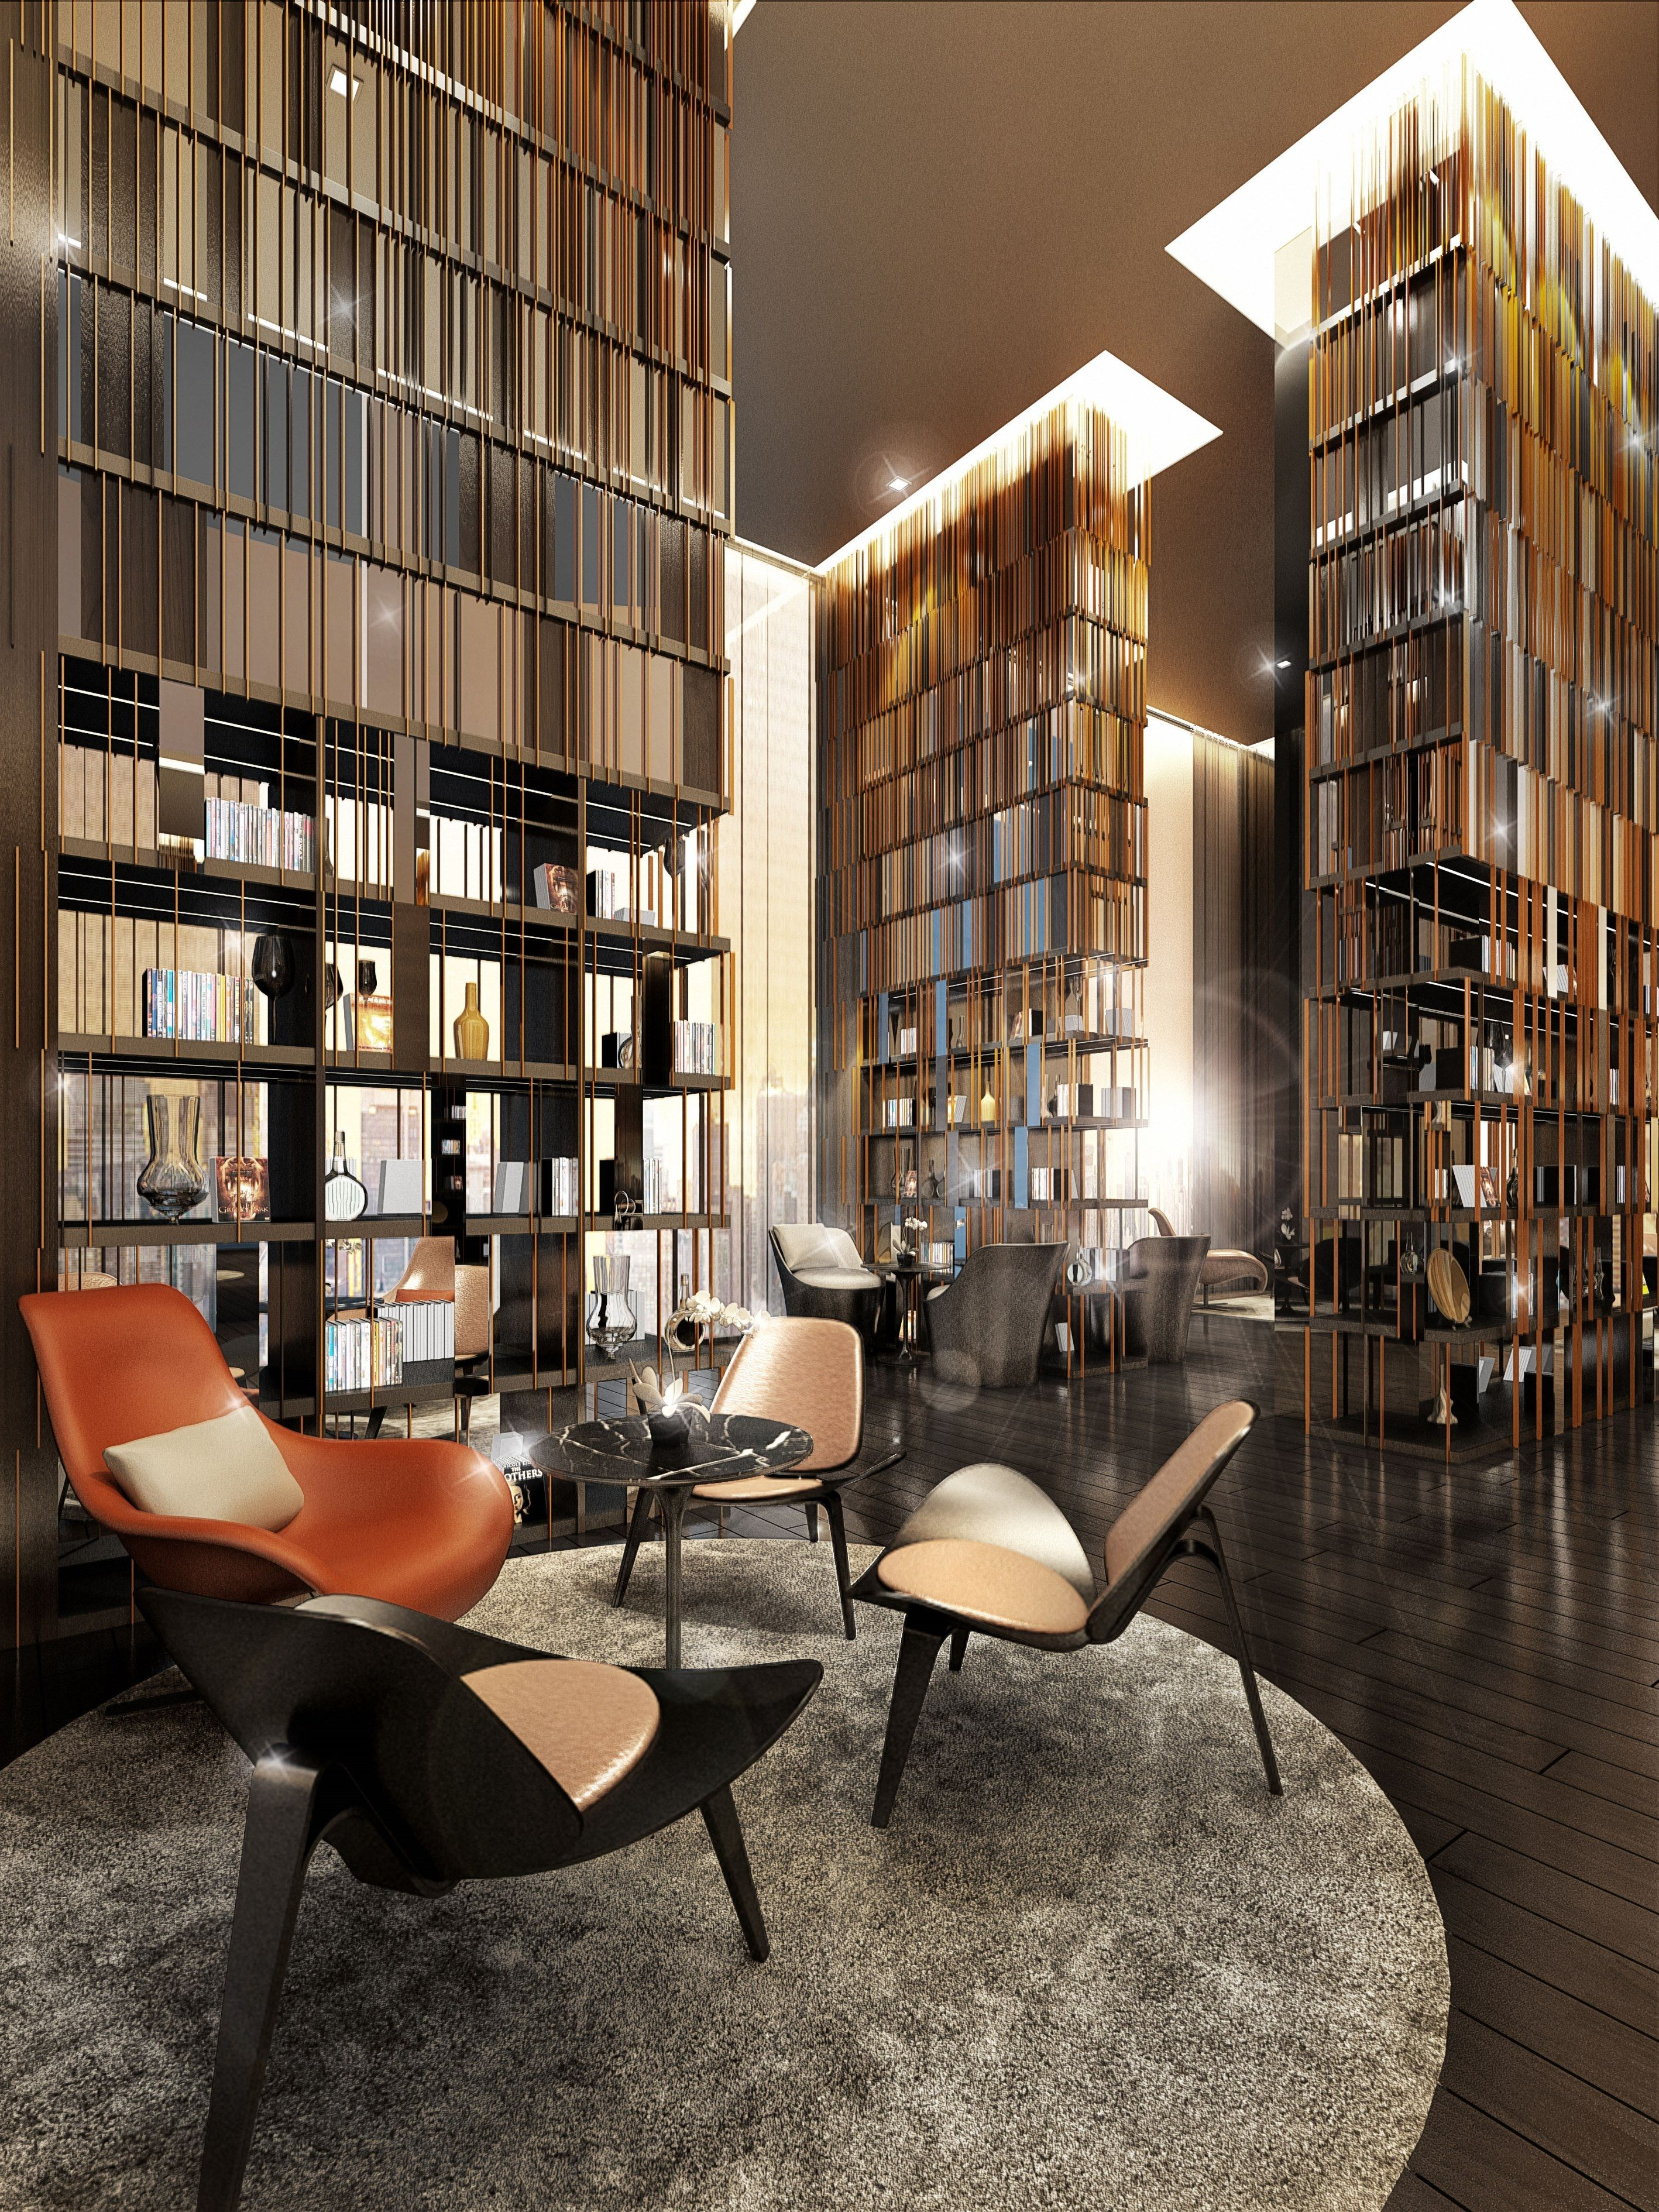 Get Inspired With Some Of The Best Interior Design Ideas For Your